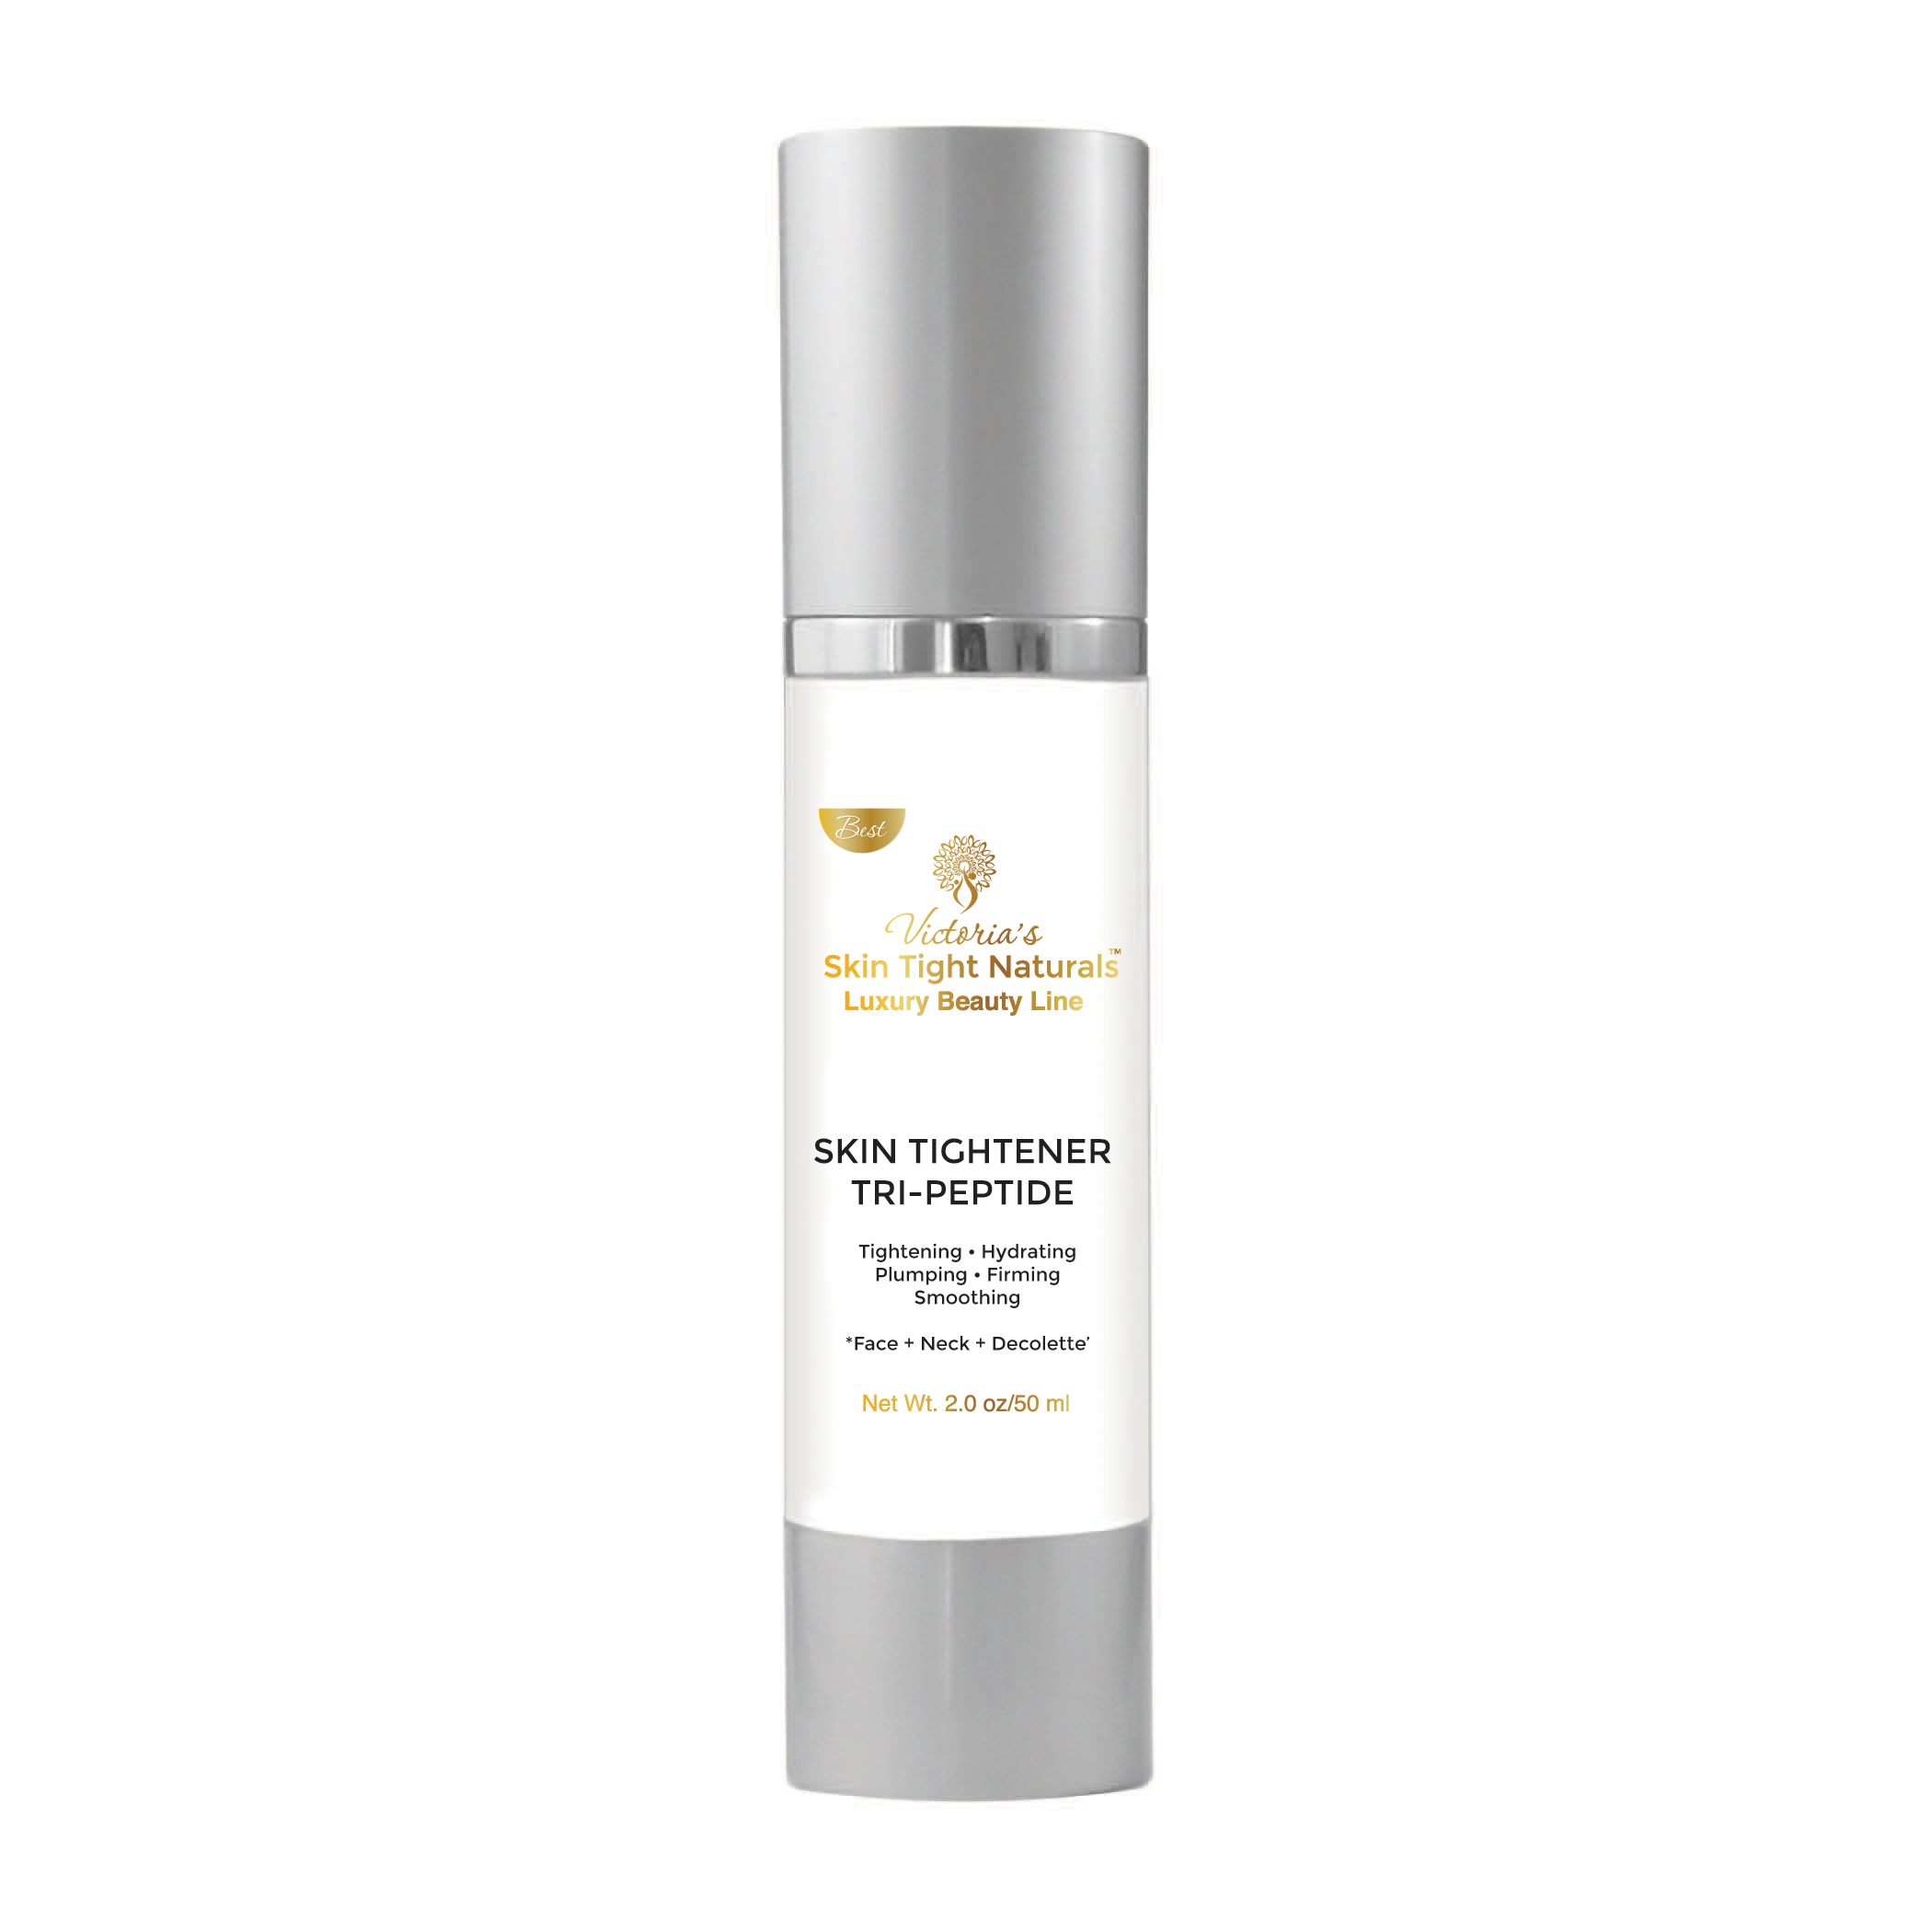 victoria's skin tightening cream anti aging